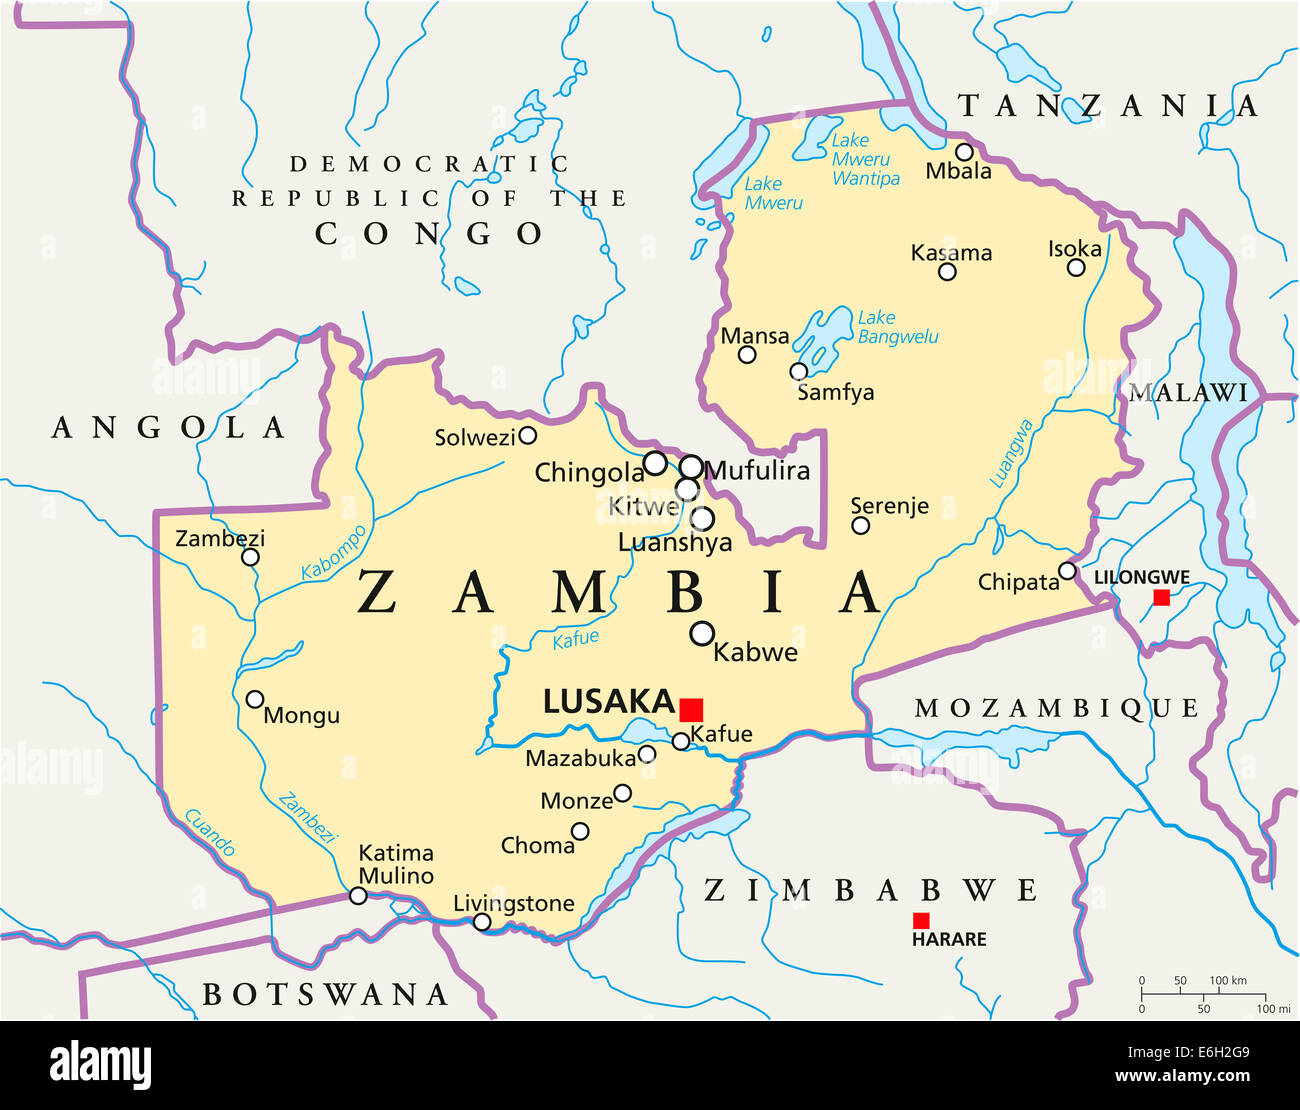 Zambia Political Map with capital Lusaka, national borders, most